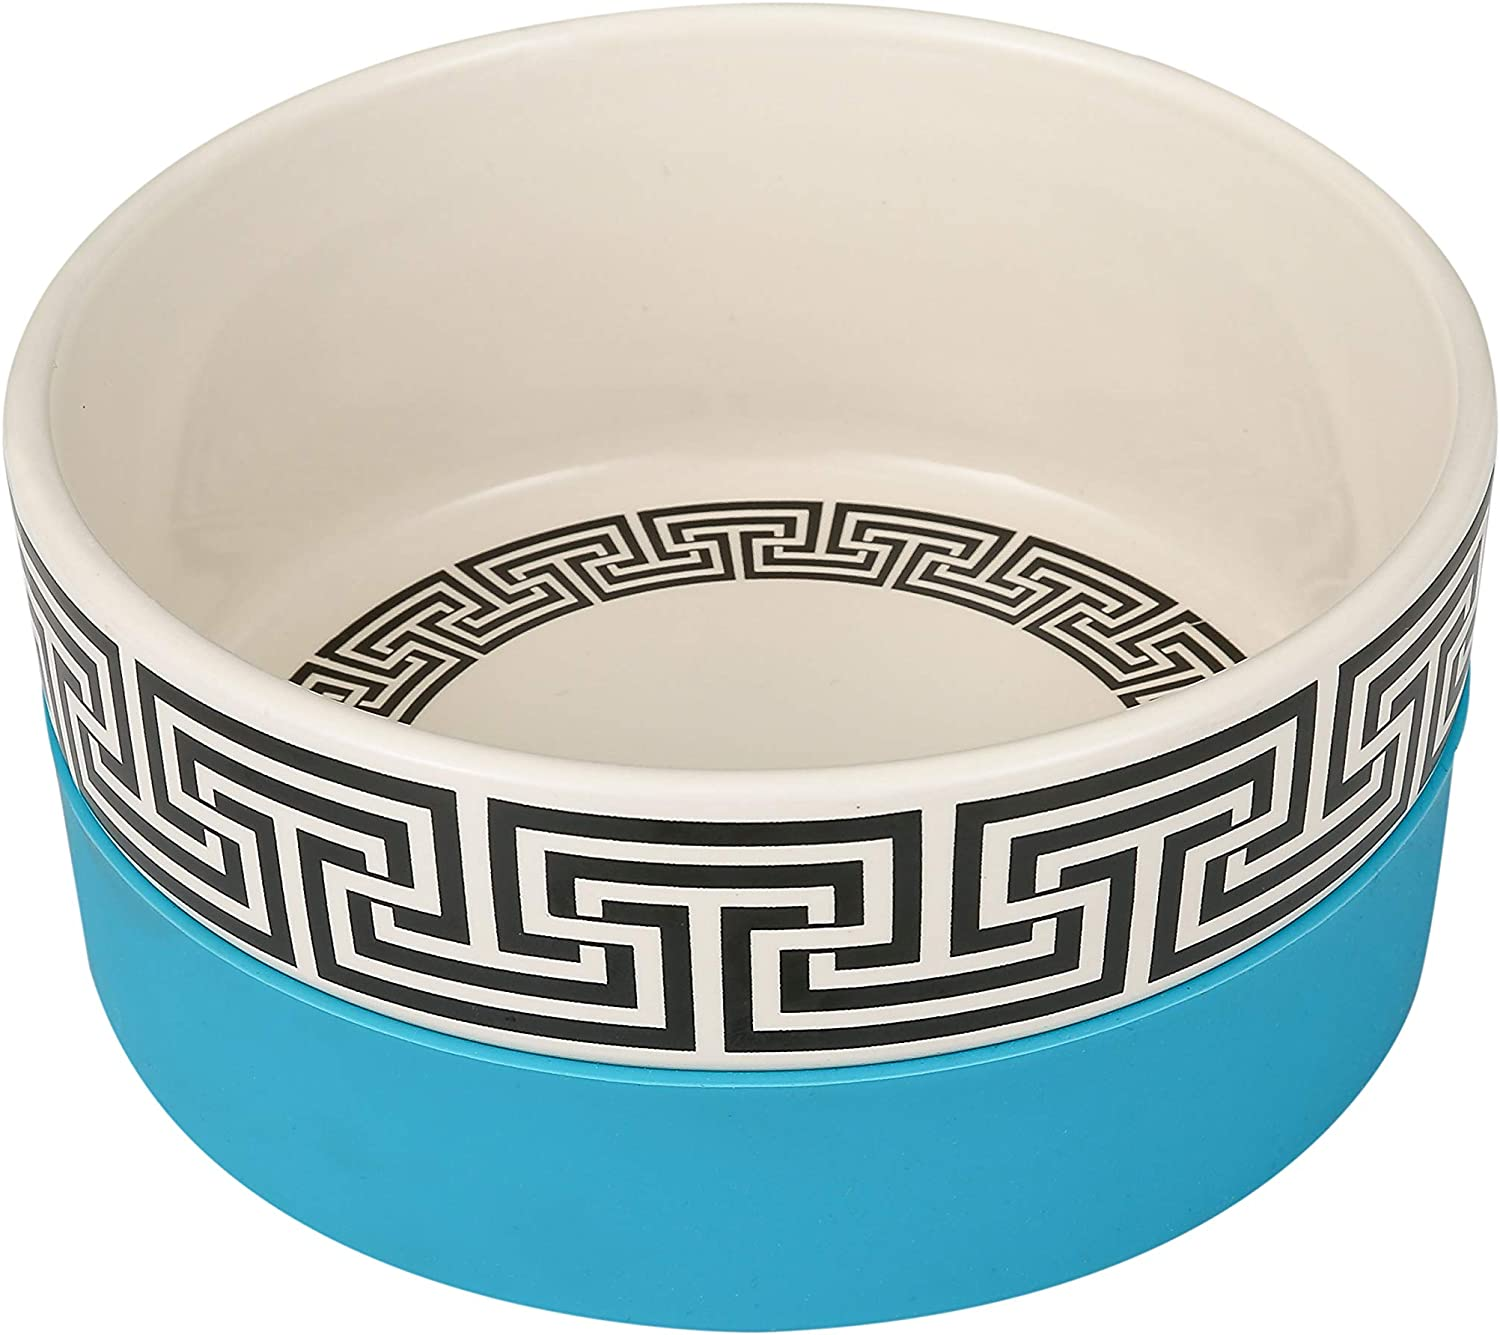 Now House for Pets by Jonathan Adler Duo Dog Bowl, Cute Ceramic Dog Food Bowl from Now House by Jonathan Adler for Water or Food, Available in Multiple Sizes